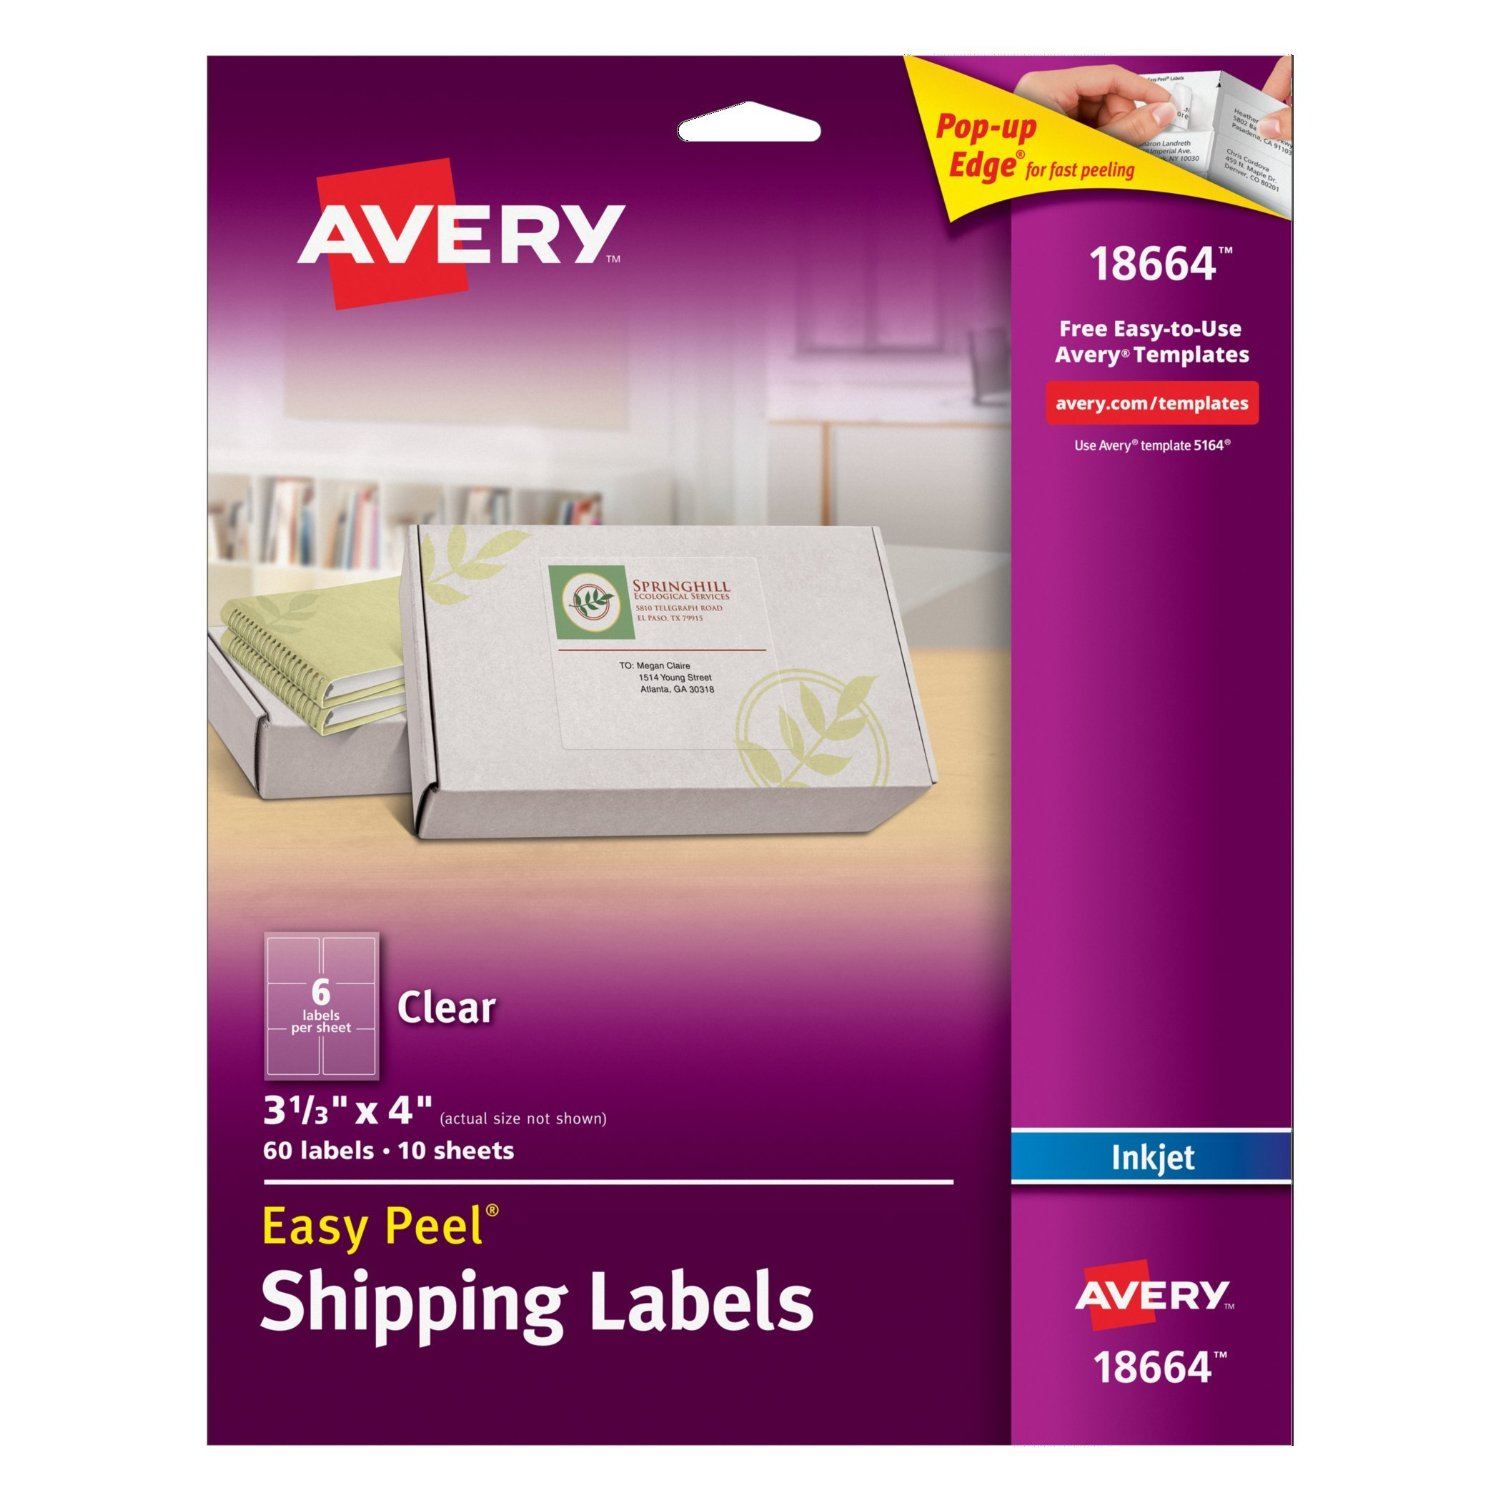 cheap avery labels 4 x 3 find avery labels 4 x 3 deals on line at